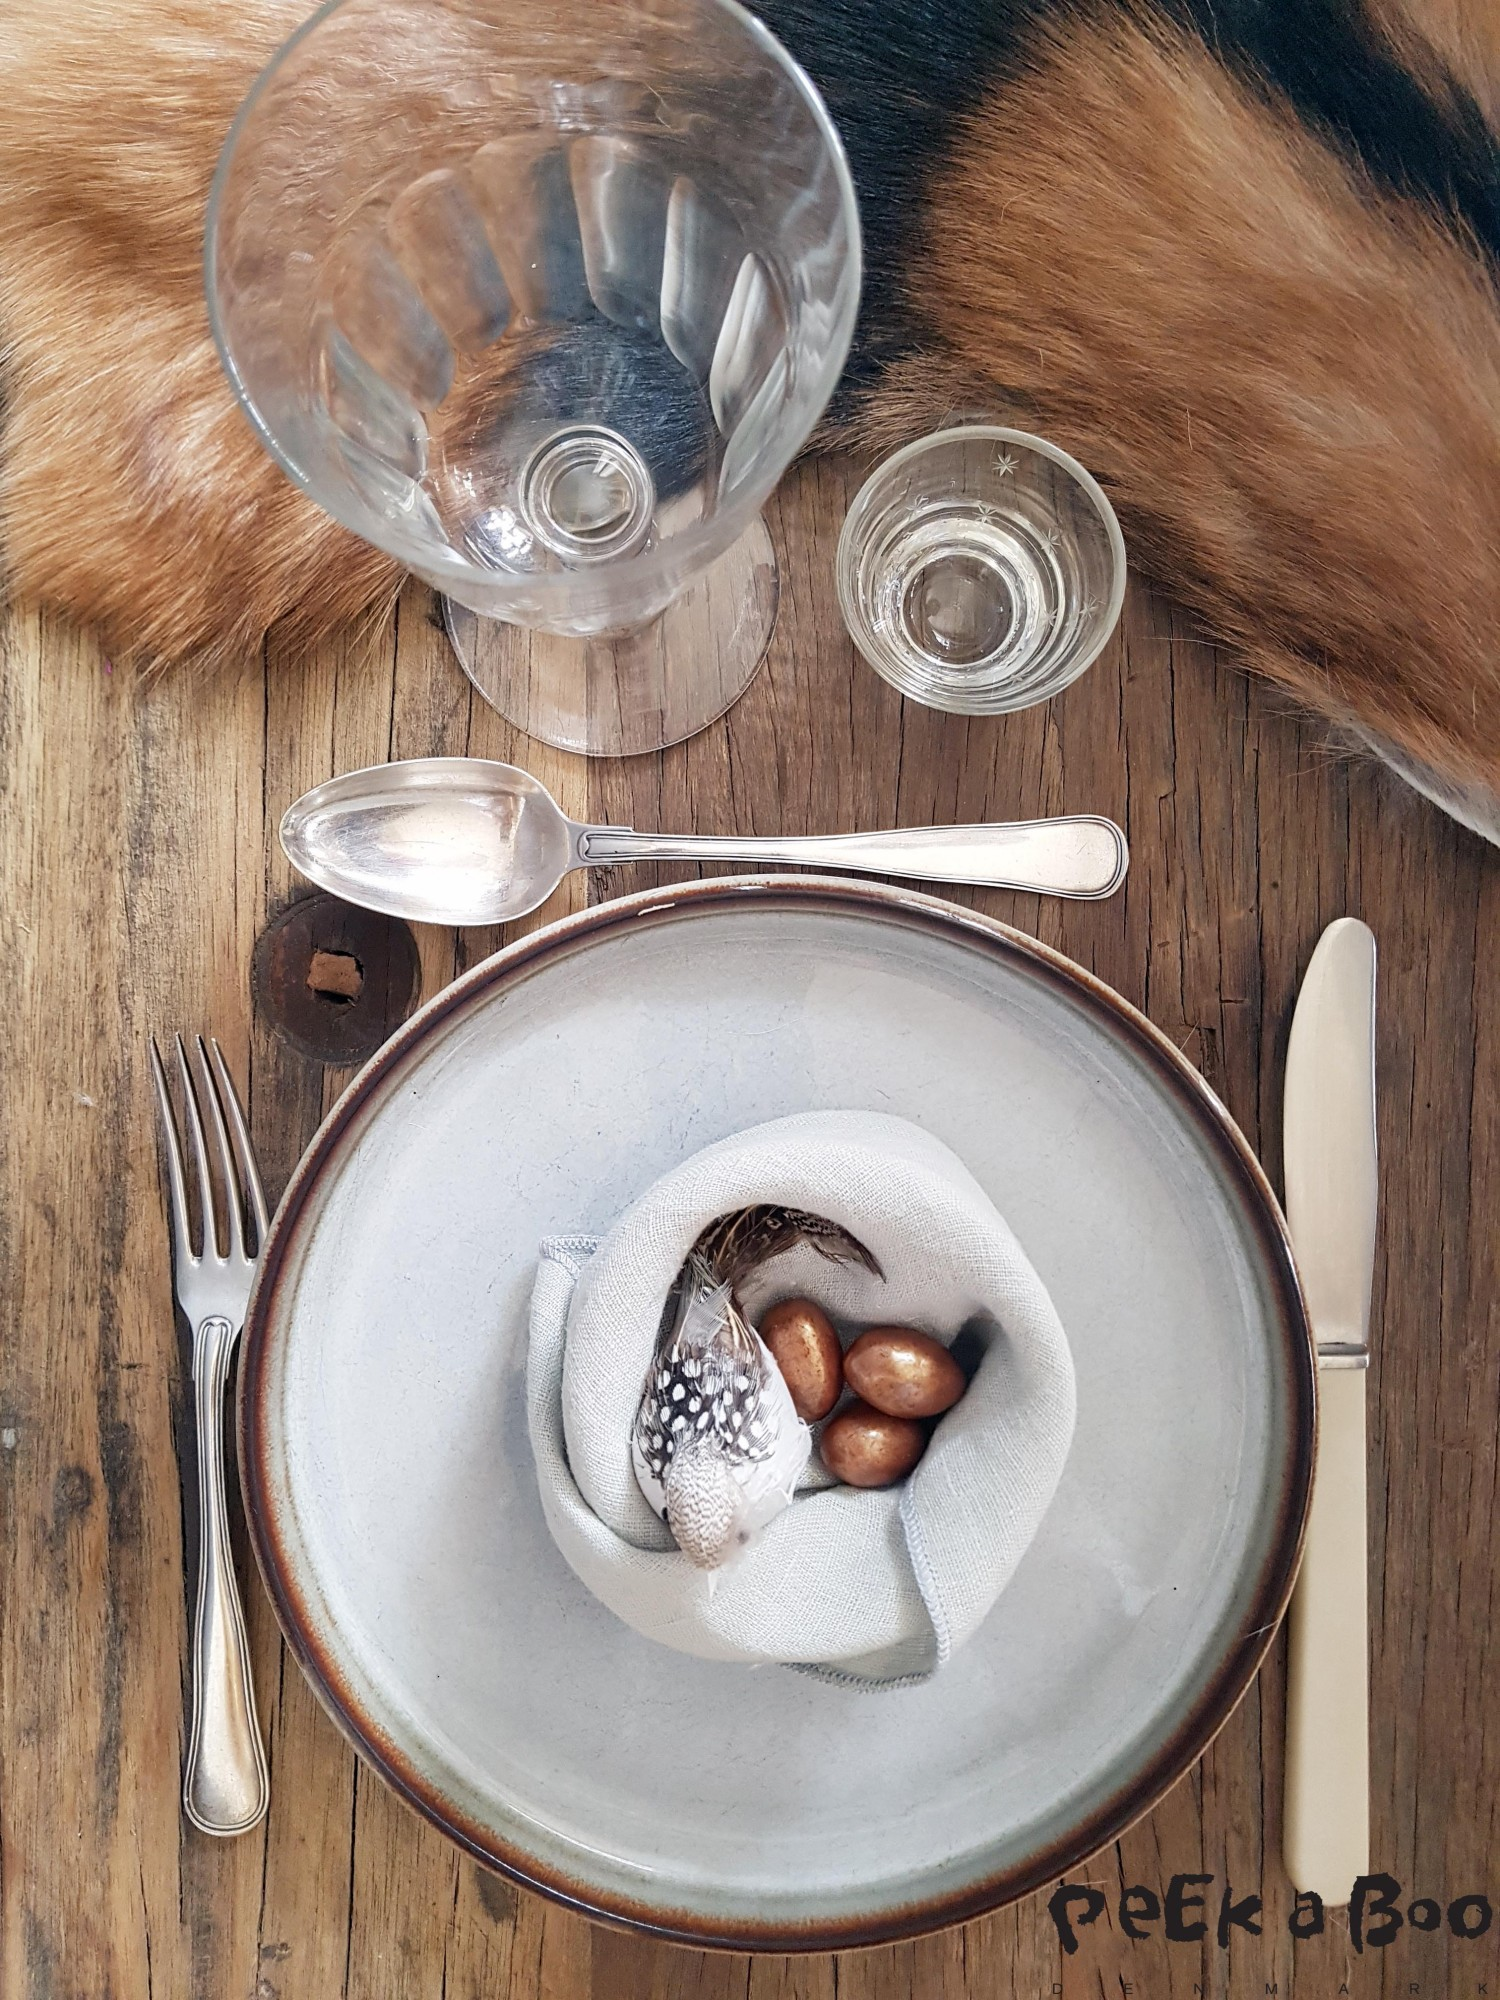 Nordic simplicity on your Easter table. The raw table is actually a bench from Ib Laursen, and the stoneware is secondhand but called Sonja from Søholm. The cutlery is also found on a fleahmarket and so is the glasses. But the goat skin is from Jysk.